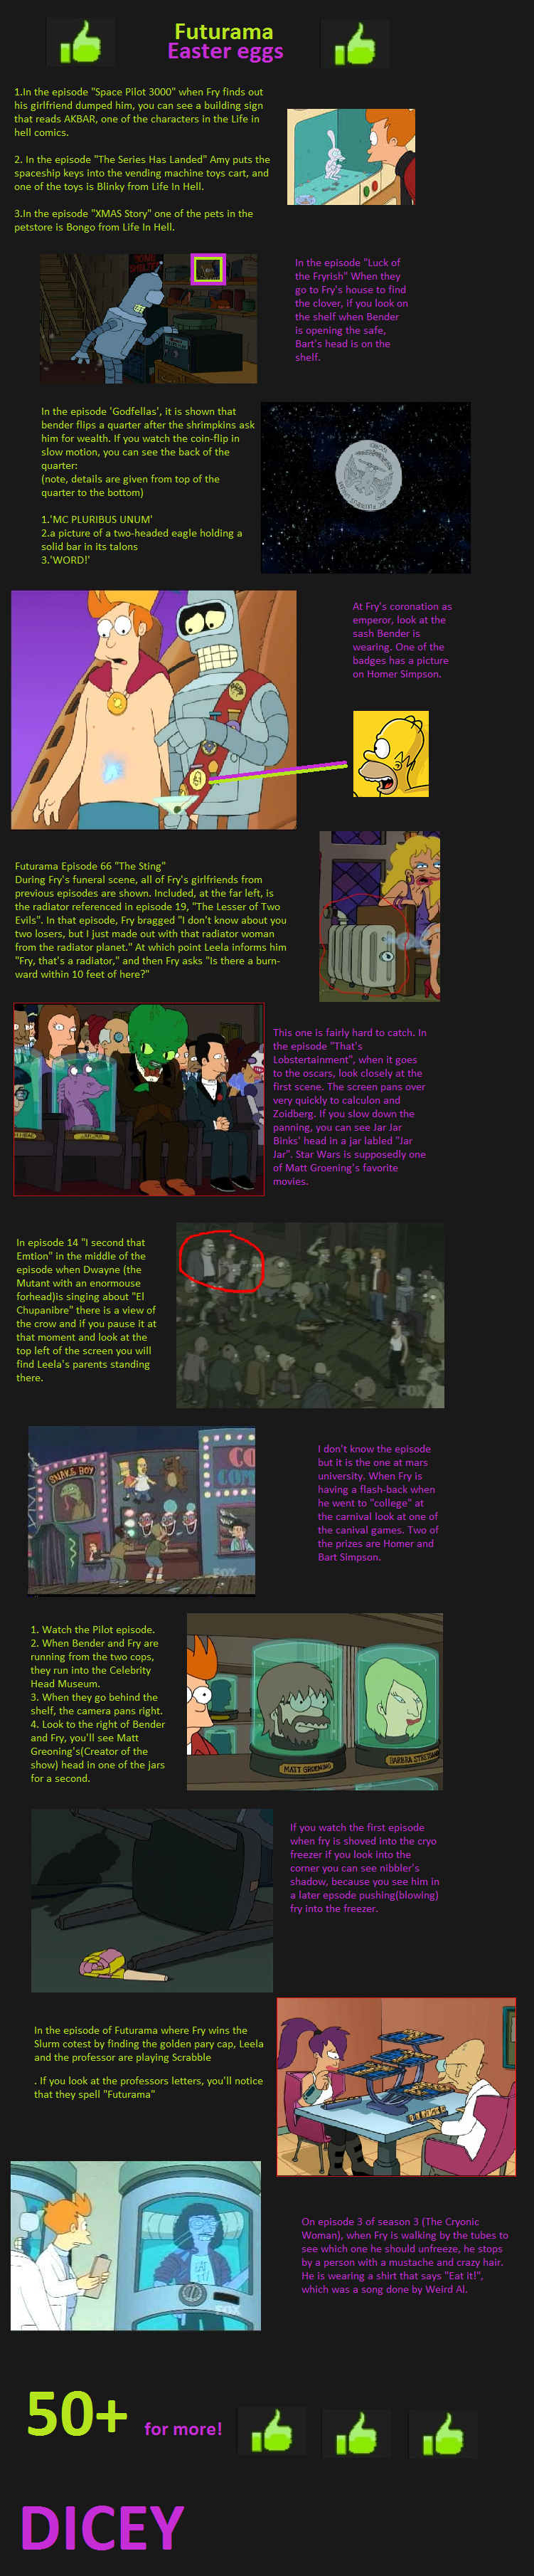 Futurama Easter Eggs!. iv got loads more so 50+ and you get more<br /> .. That's funny. I saw an episode, I don't remember which one, bit it showed george lucas's head in the head museum.